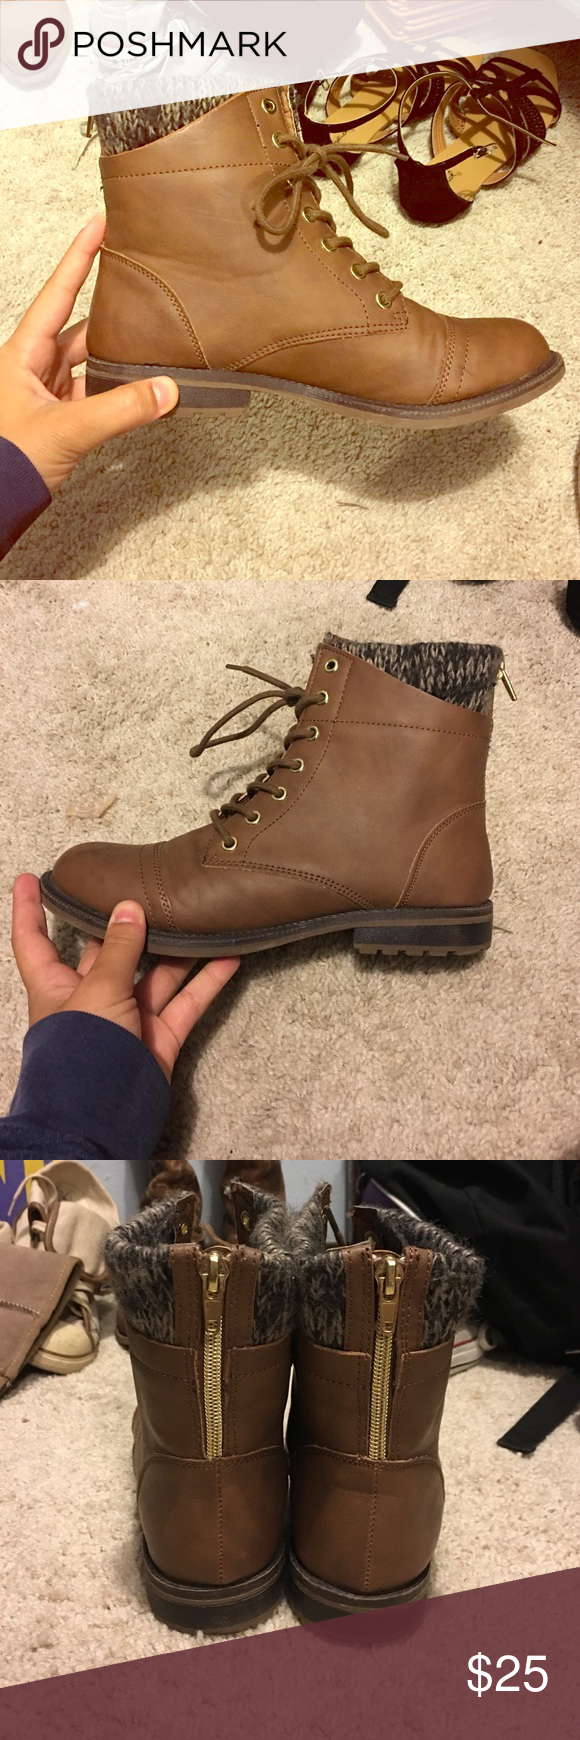 Combat Boots with Stitched Cloth | Seasons, Cold weather and Football